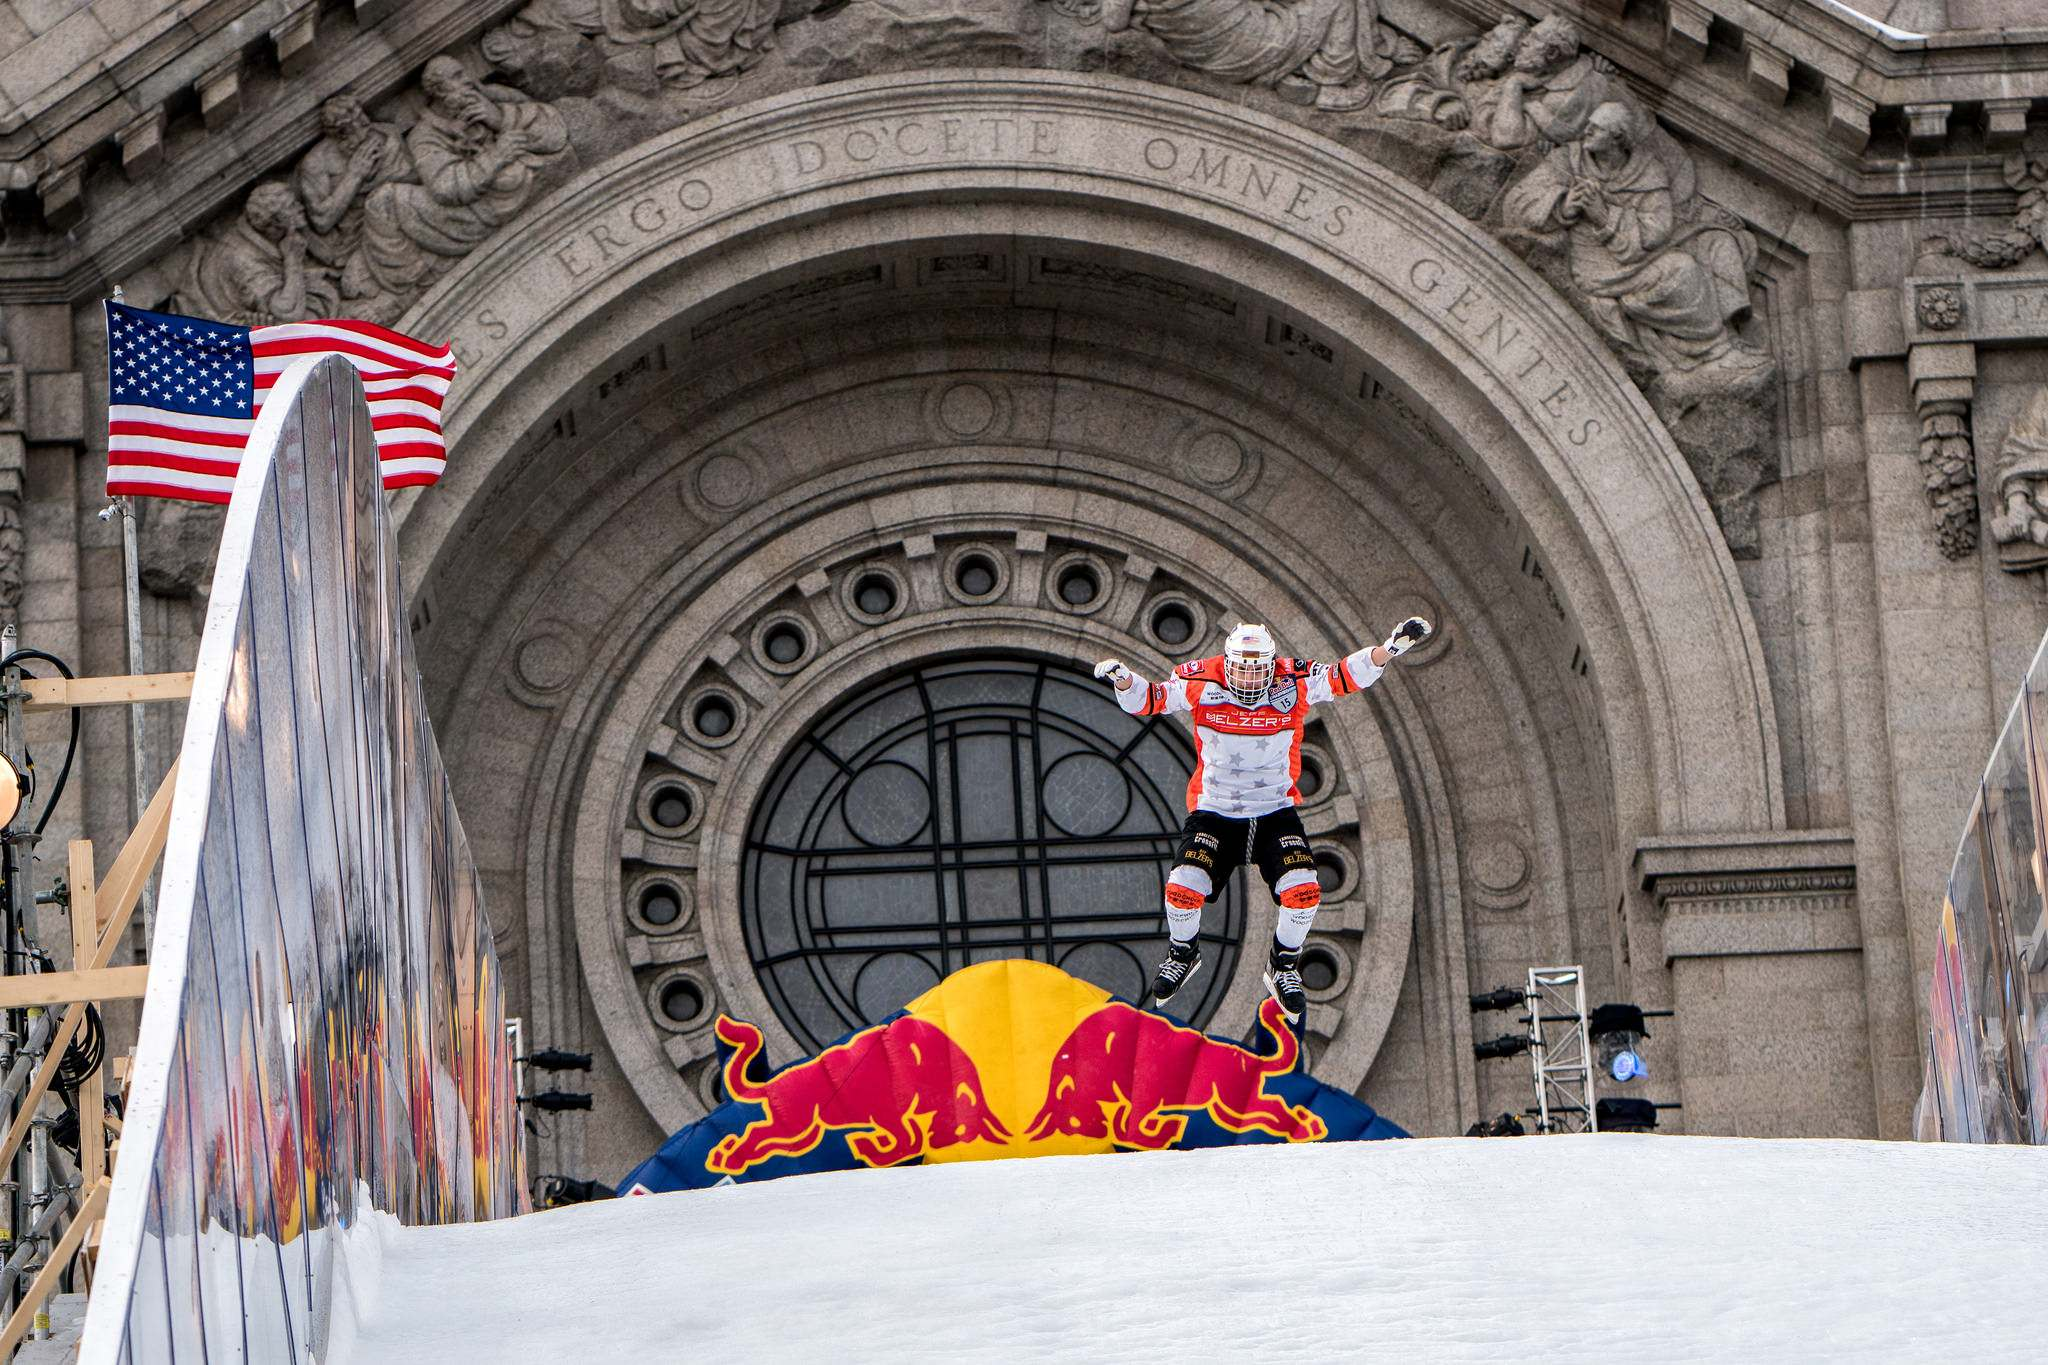 red bull crashed ice 20185 Red Bull Crashed Ice 2018 in St Paul, Minnesota